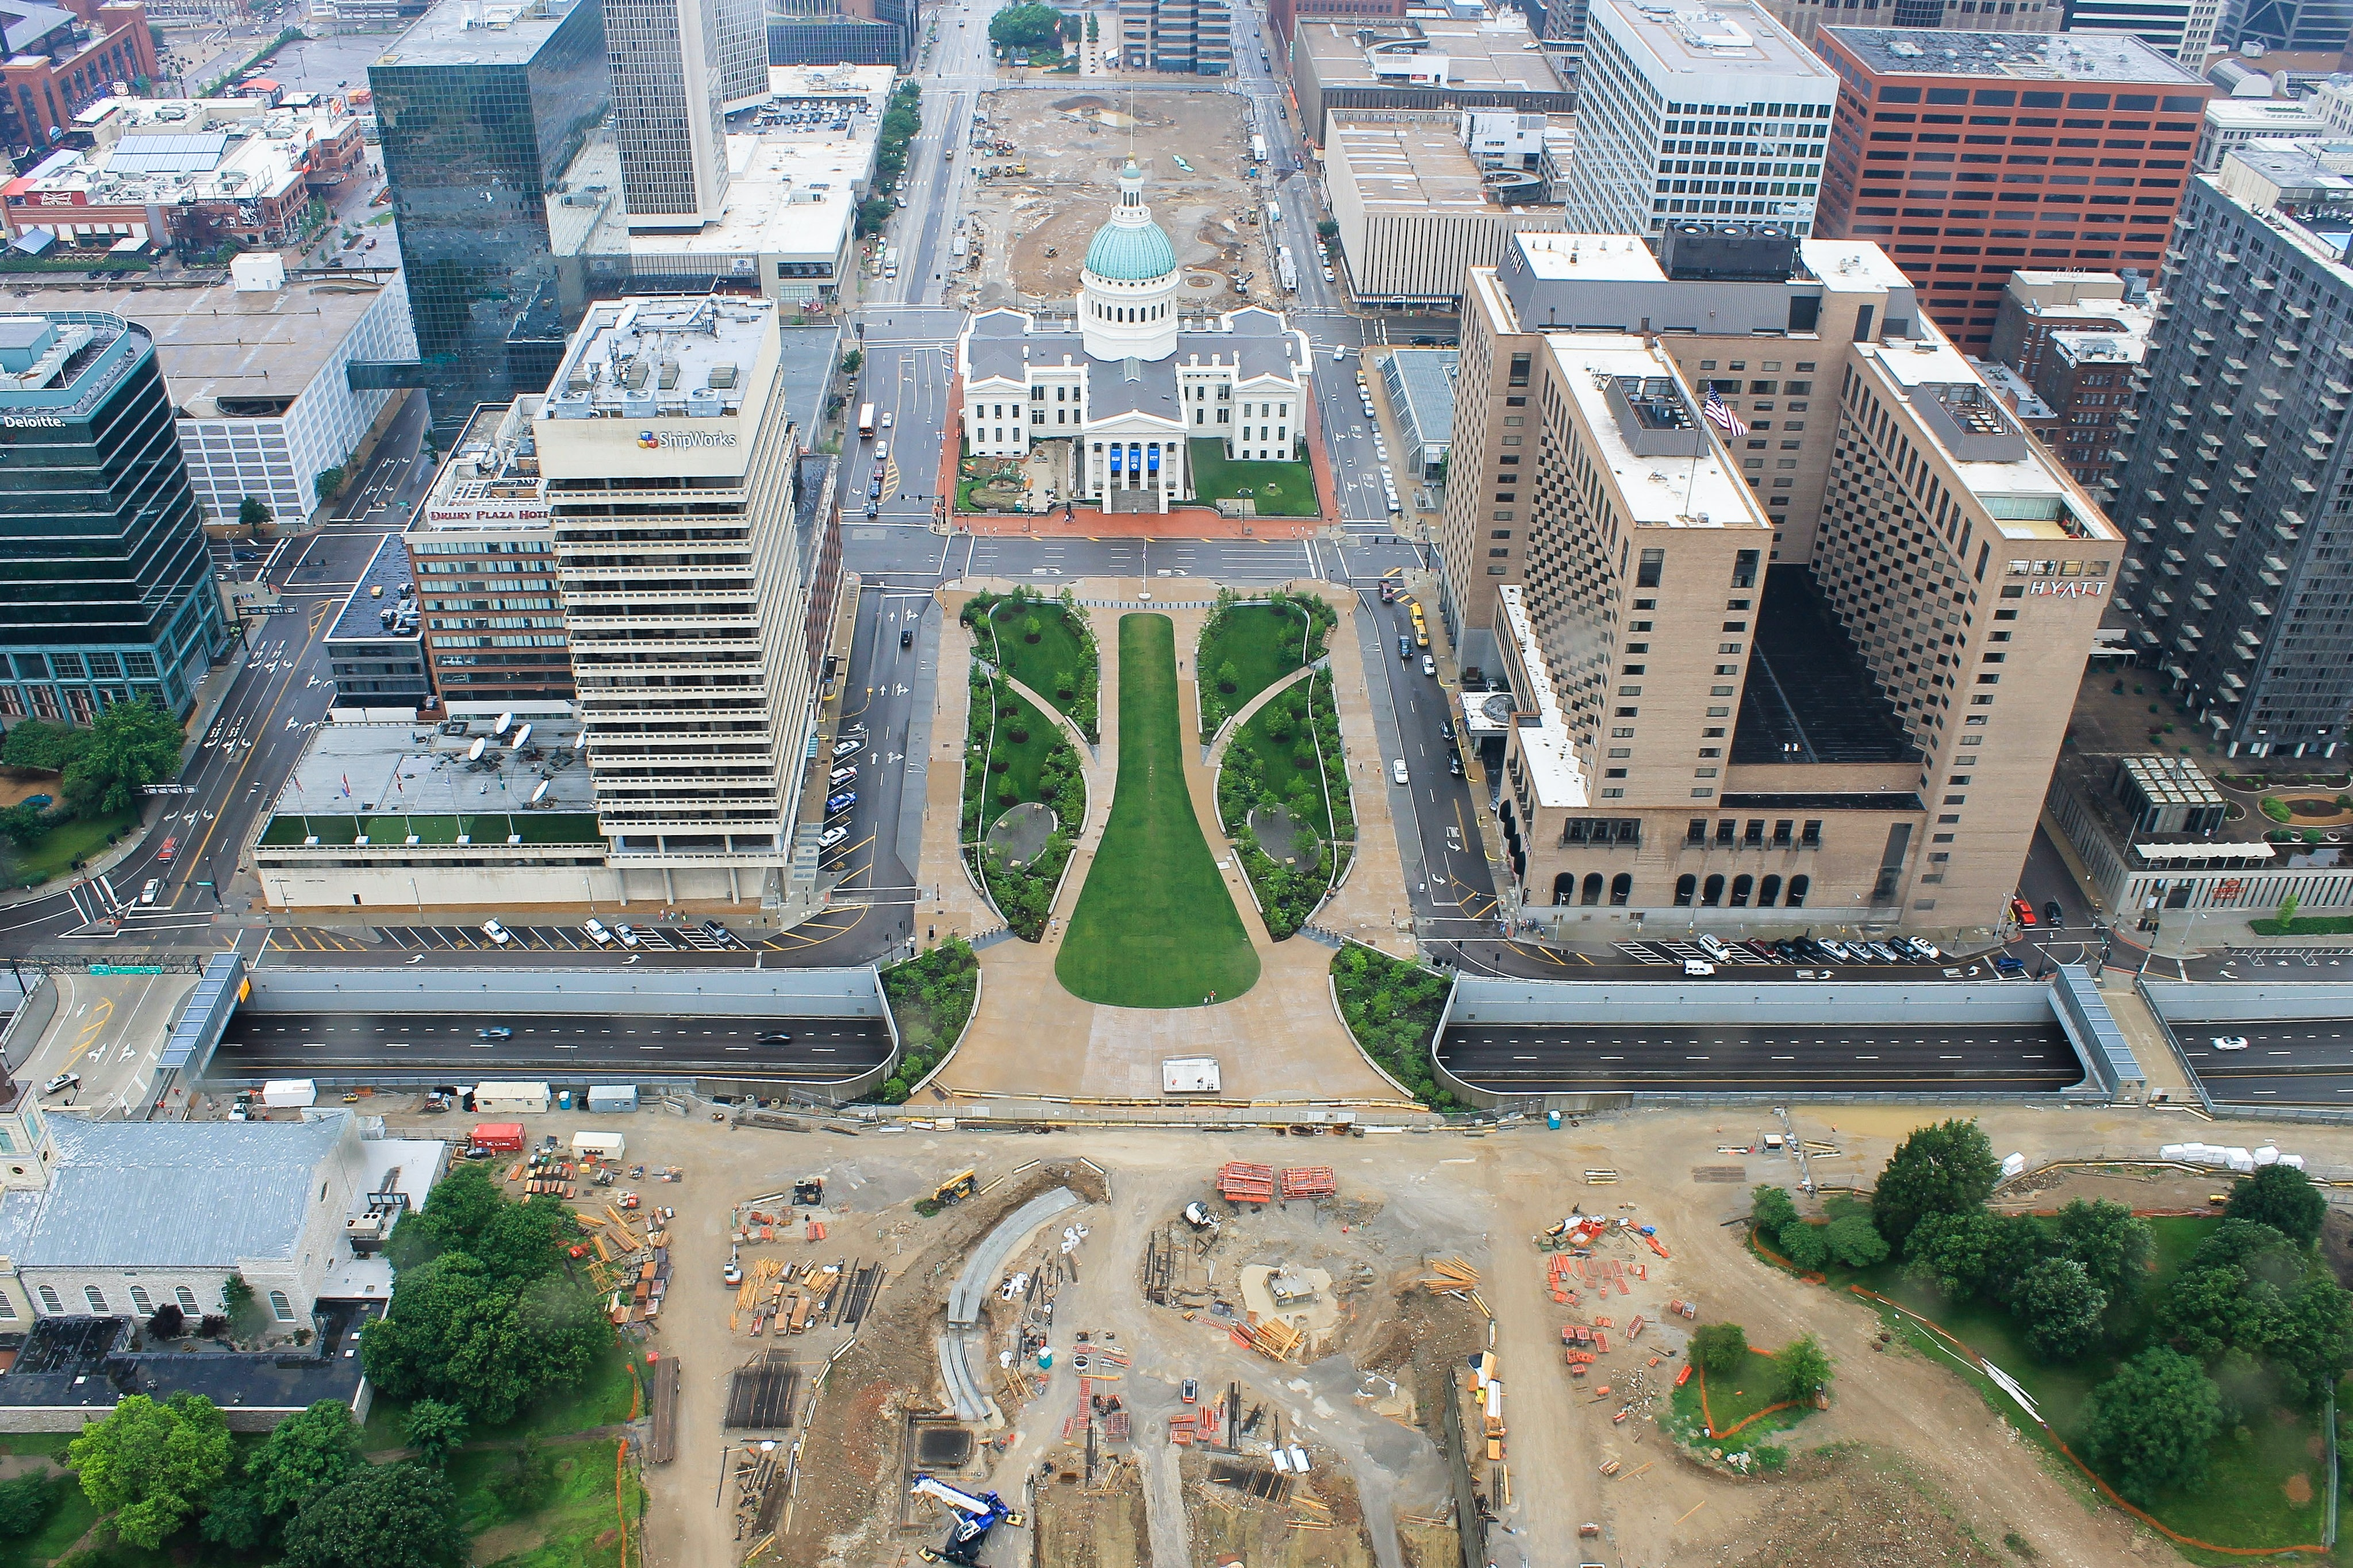 The view from above a construction site in St. Louis with surrounding buildings and city hall.